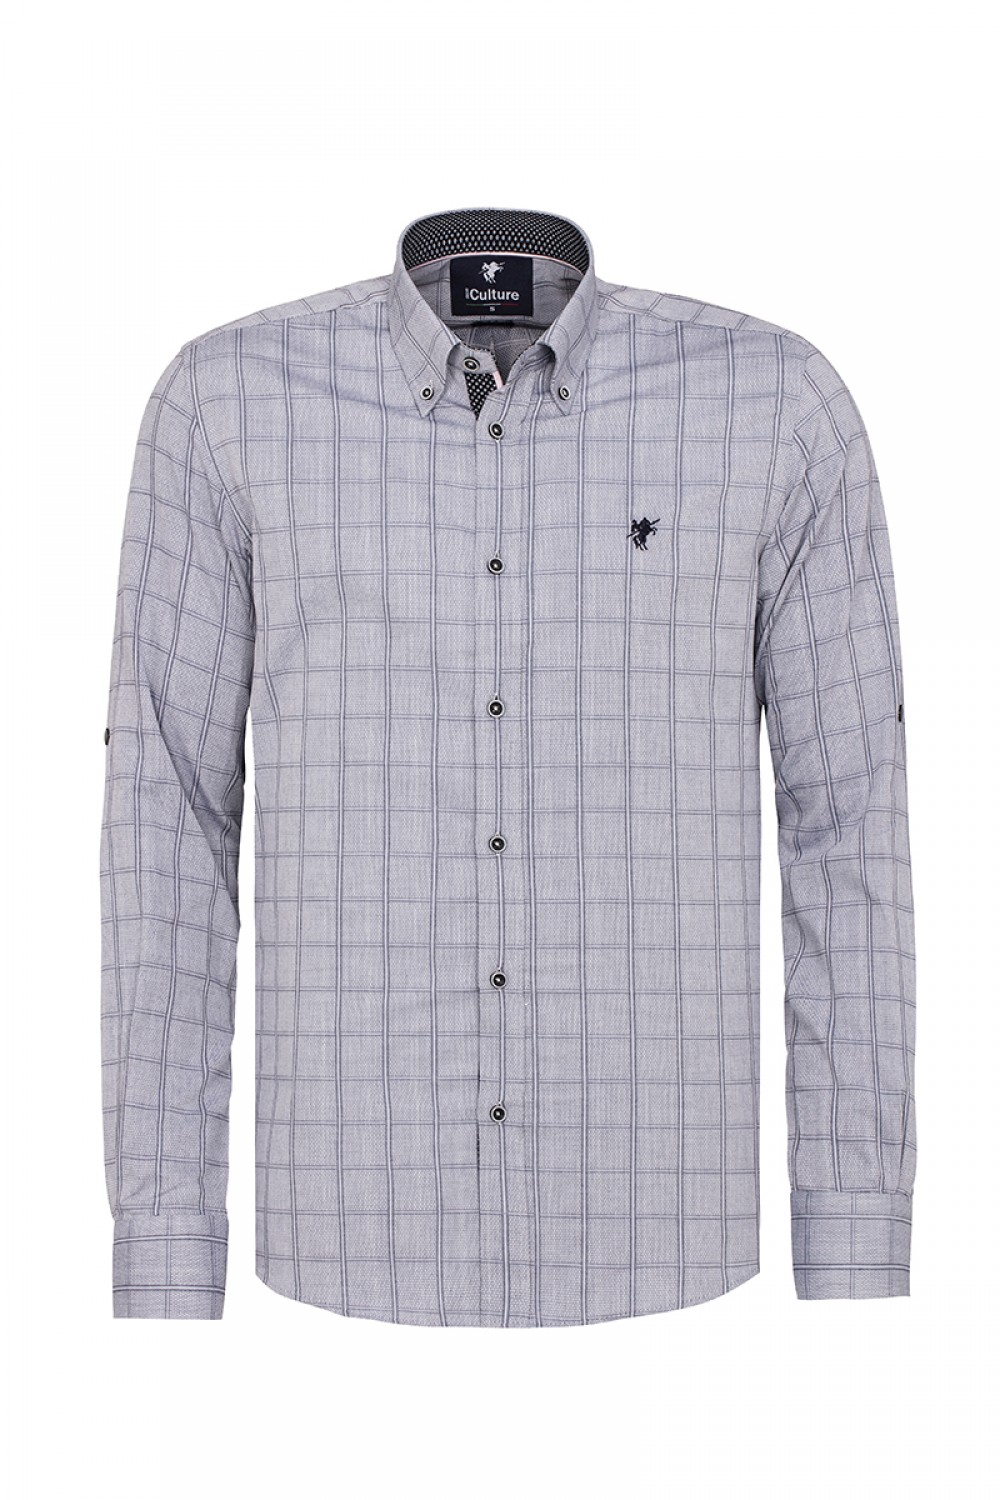 Men's Shirt Button Down Grey Checked